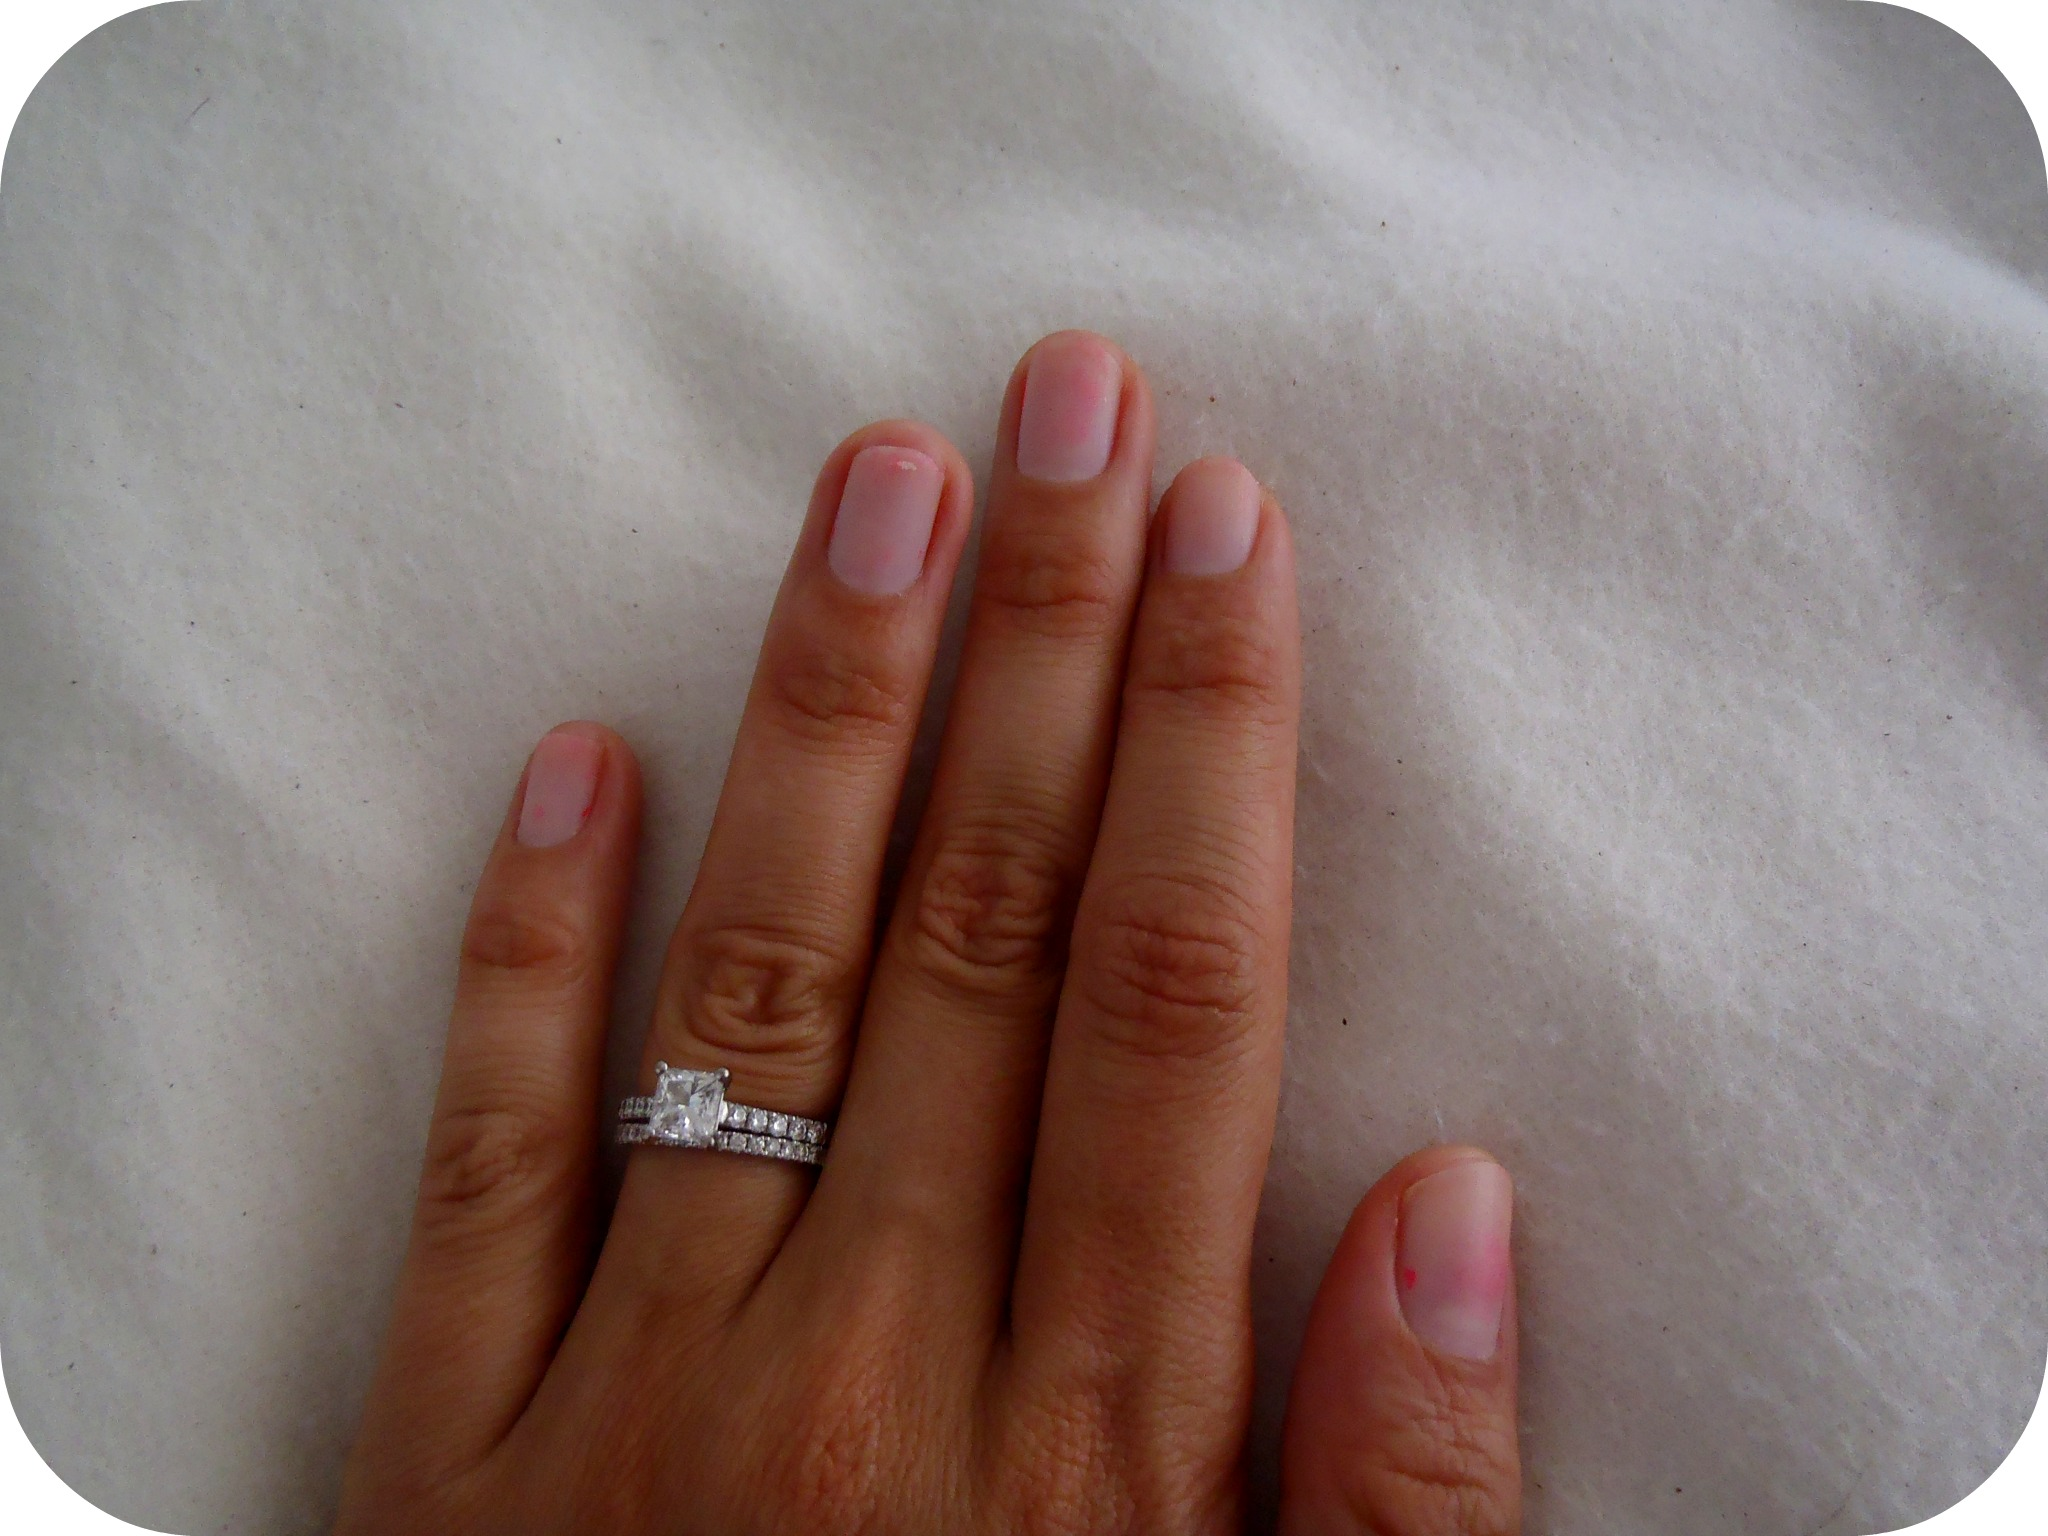 gel nails with shellac on top photo - 1